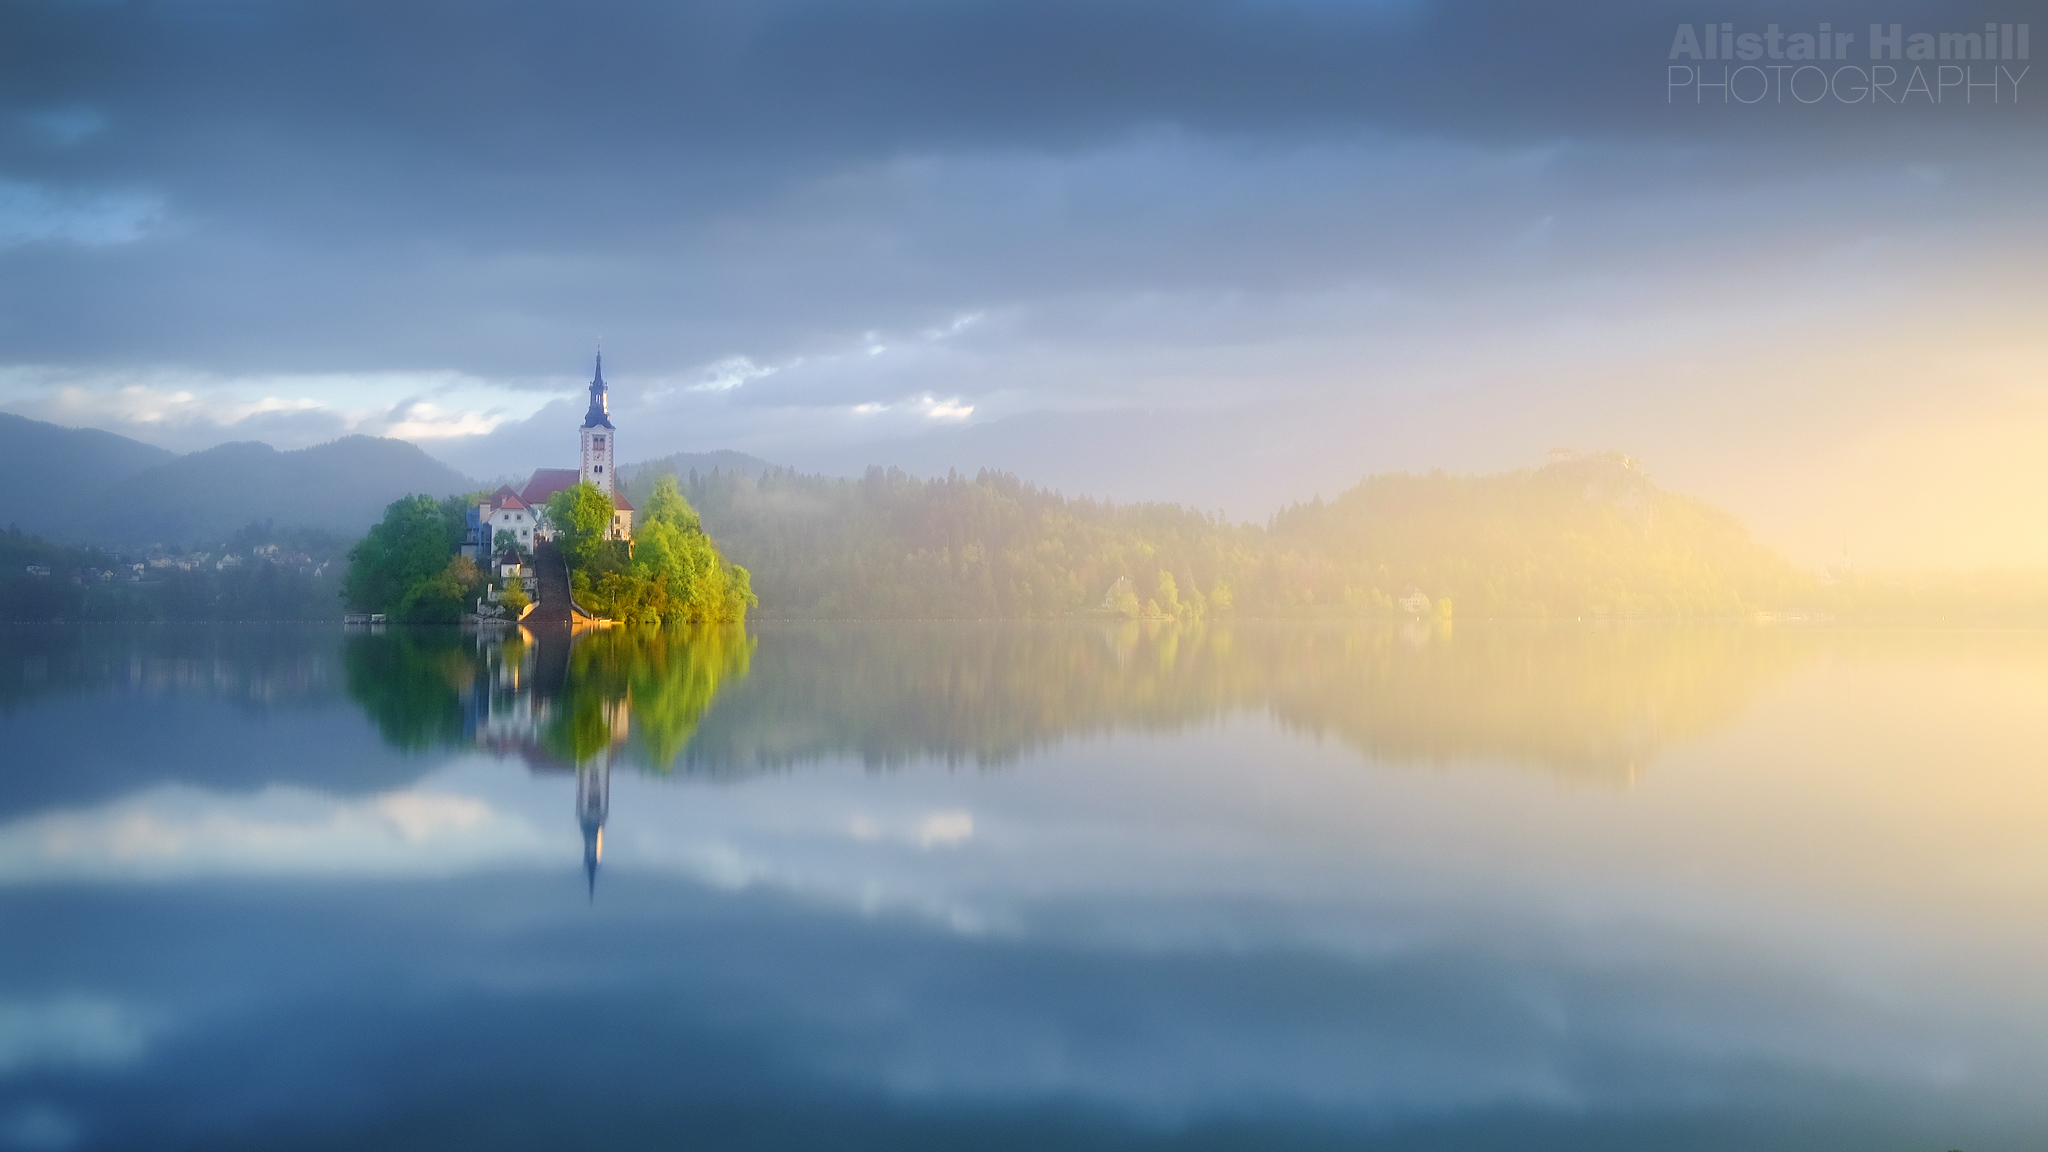 Lake+Bled+final+morning+light+breakthrough+(large)+WM.jpg